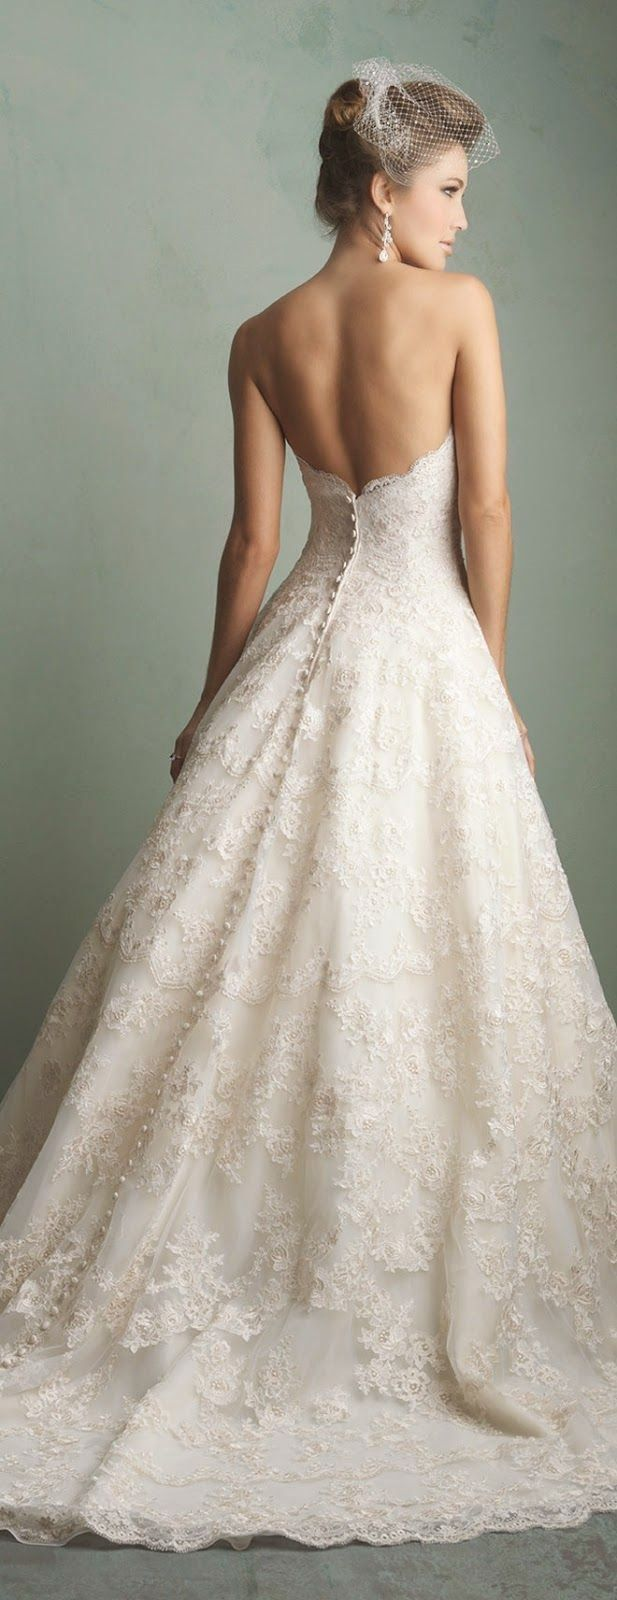 Strapless low back all lace gown with buttons to the bottoms